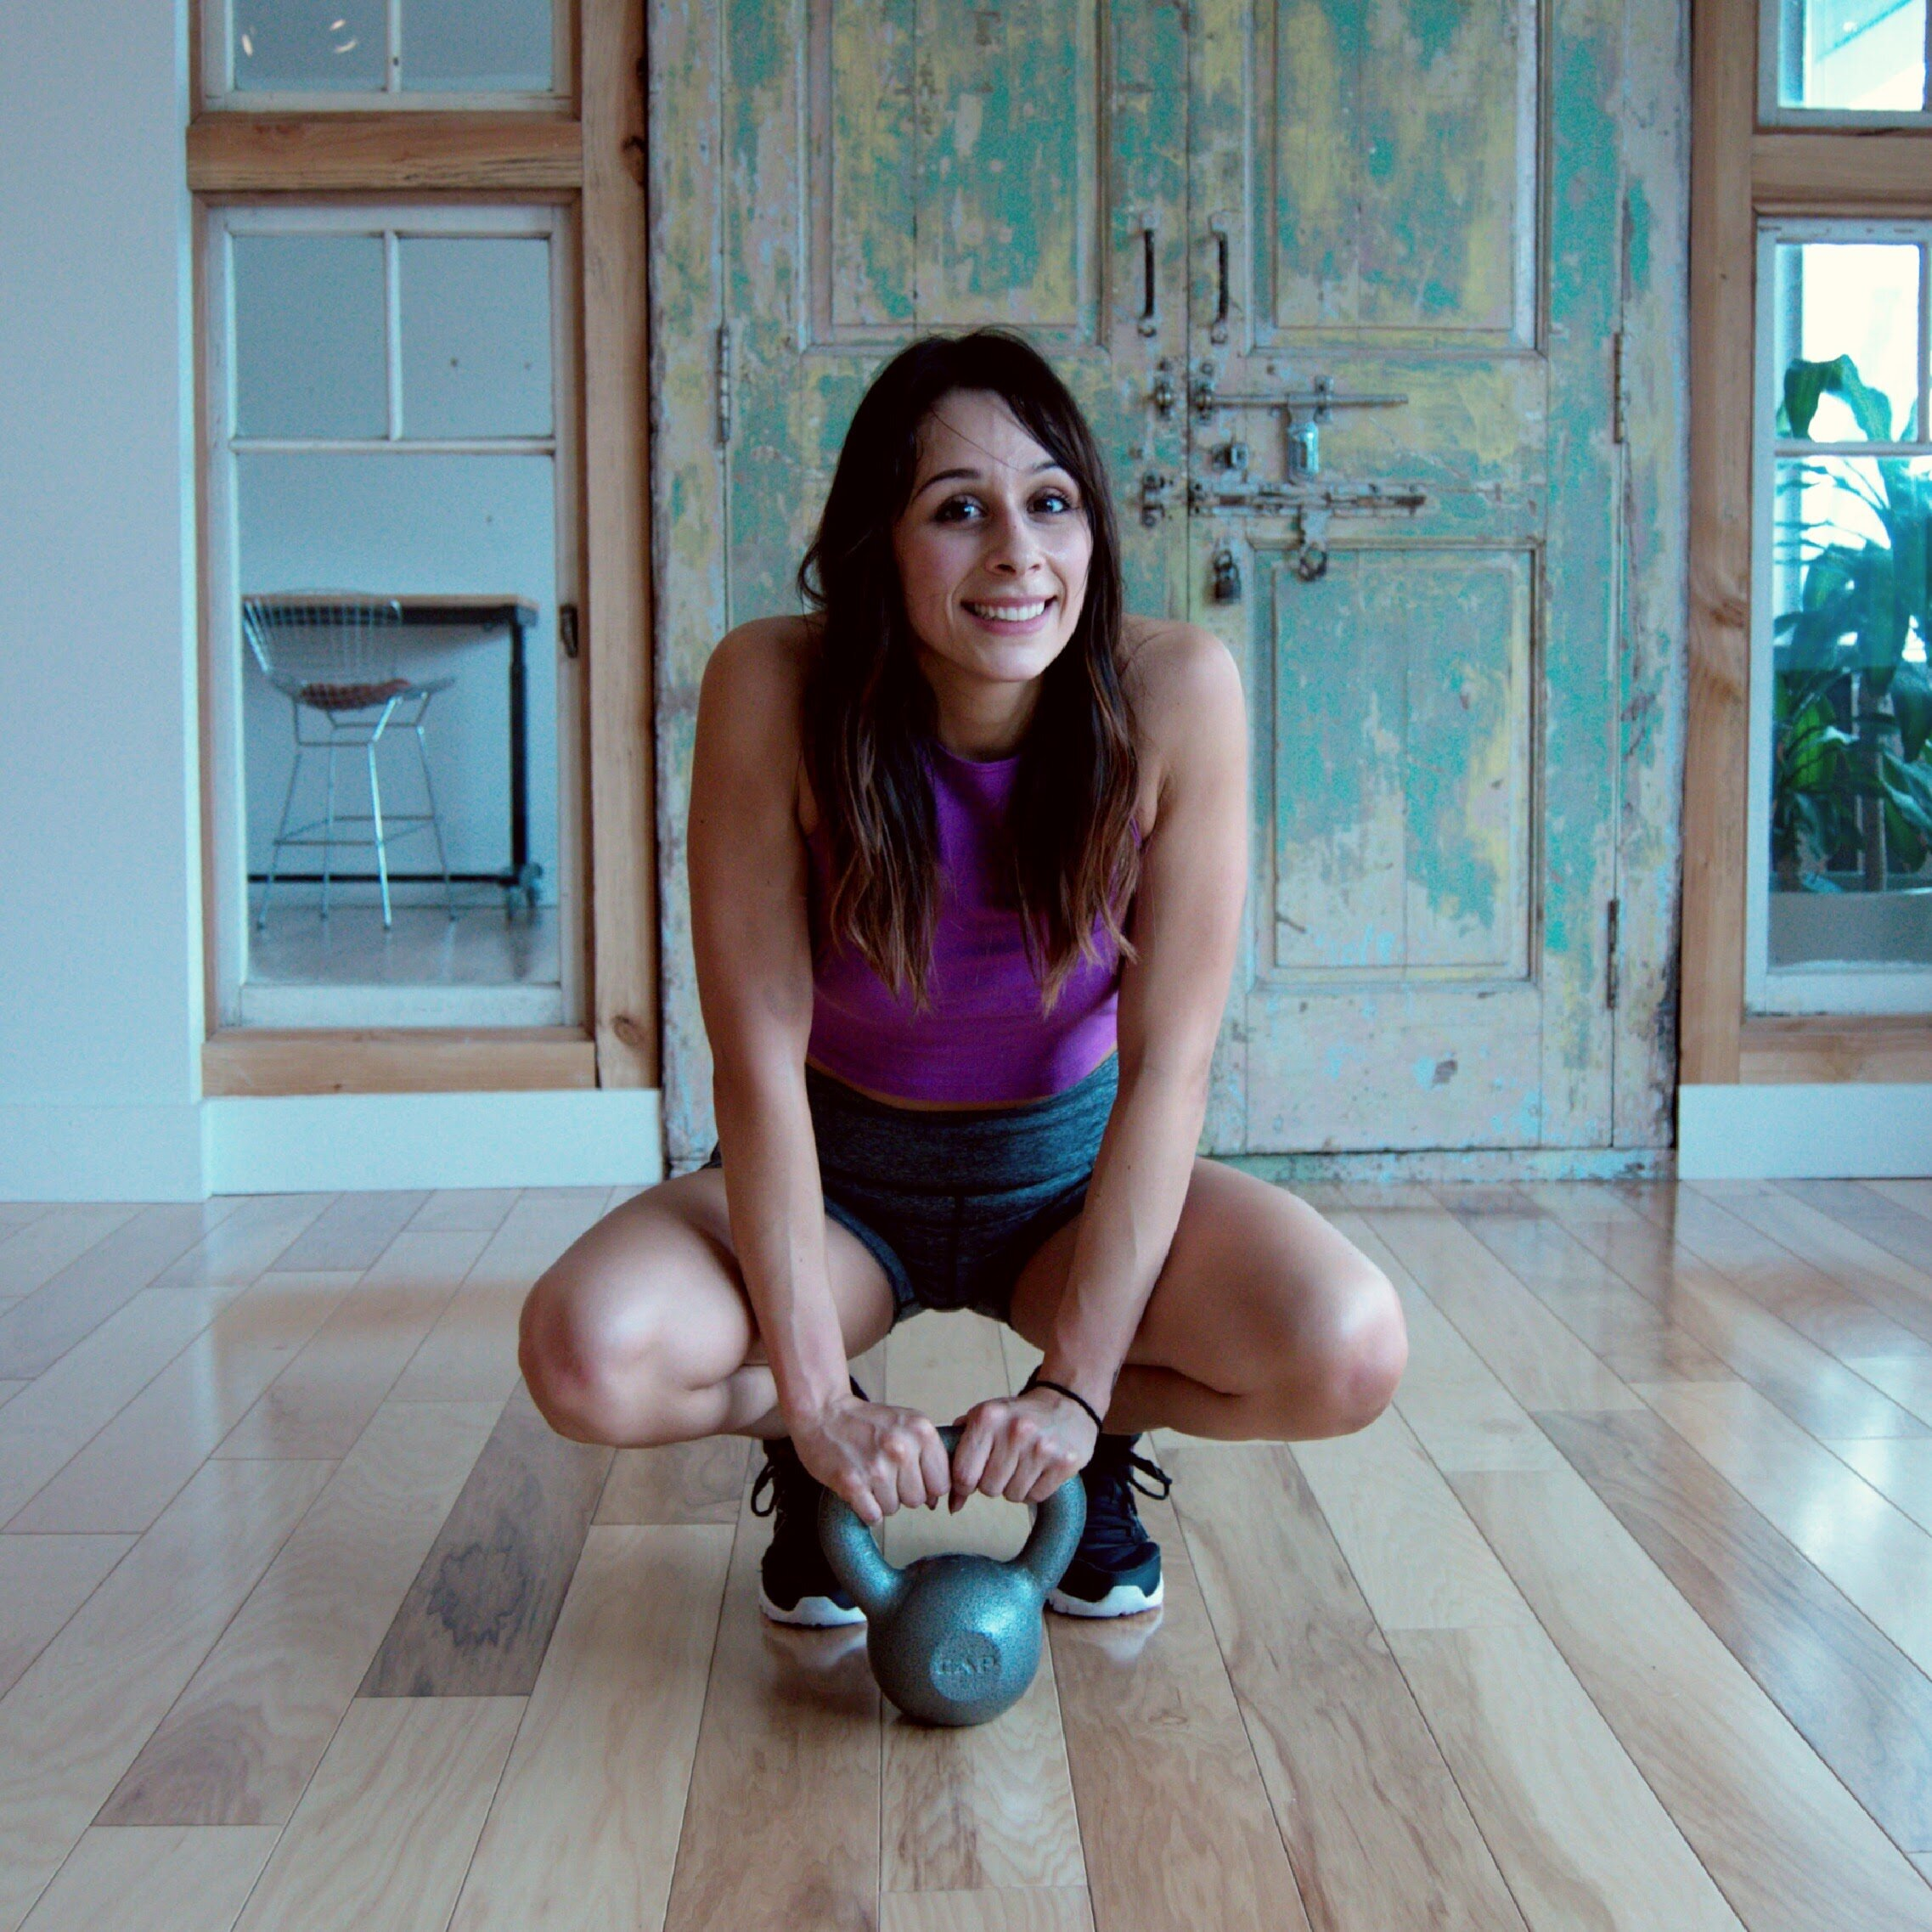 My very first photoshoot. I have since graduated to 35lb kettlebells!